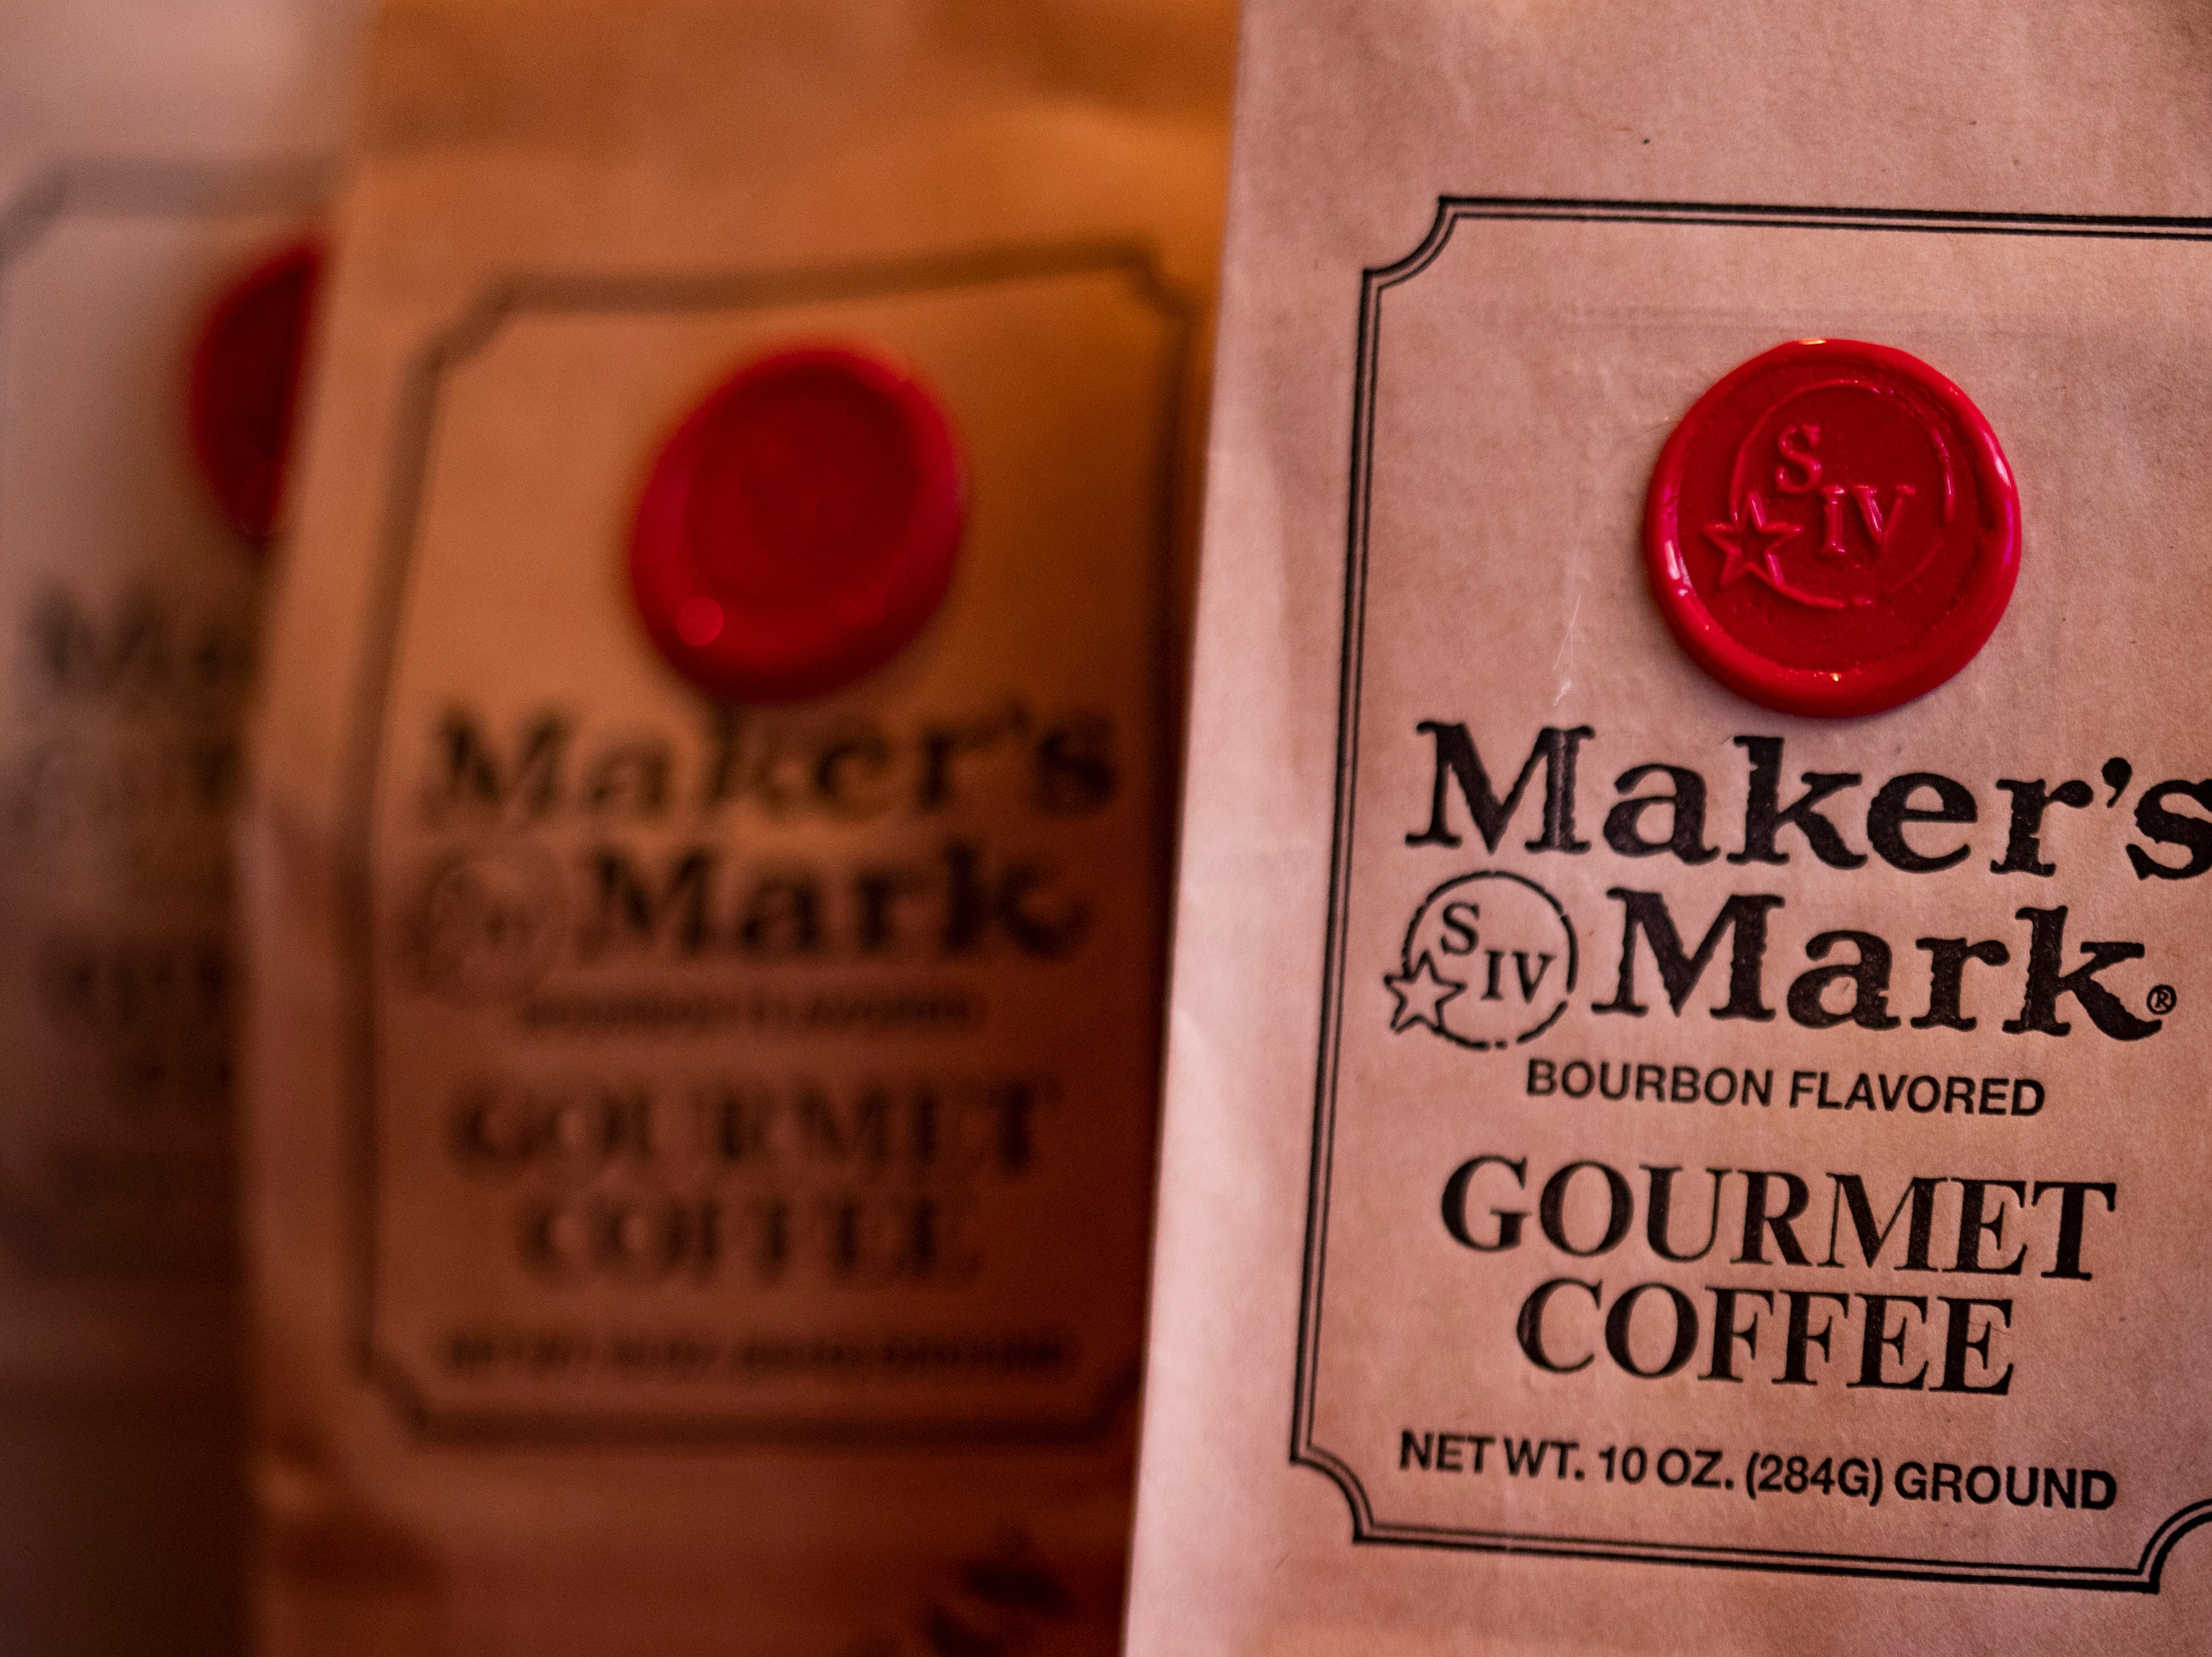 """Ted's Cigars also makes the Maker's Mark coffee that the distillery company sells. Jackson says that Maker's Mark spends over $50,000 on the coffee and sell Jackson the red wax SIV watermark labels to use on the products. """"If Maker's Mark is hosting cigar events with me, if they're buying the cigar for promotional services, they're selling us bourbon, where is the confusion coming from?"""" Jackson said. """"Maker's Mark is causing the confusion in the marketplace."""" Jan. 10, 2019"""